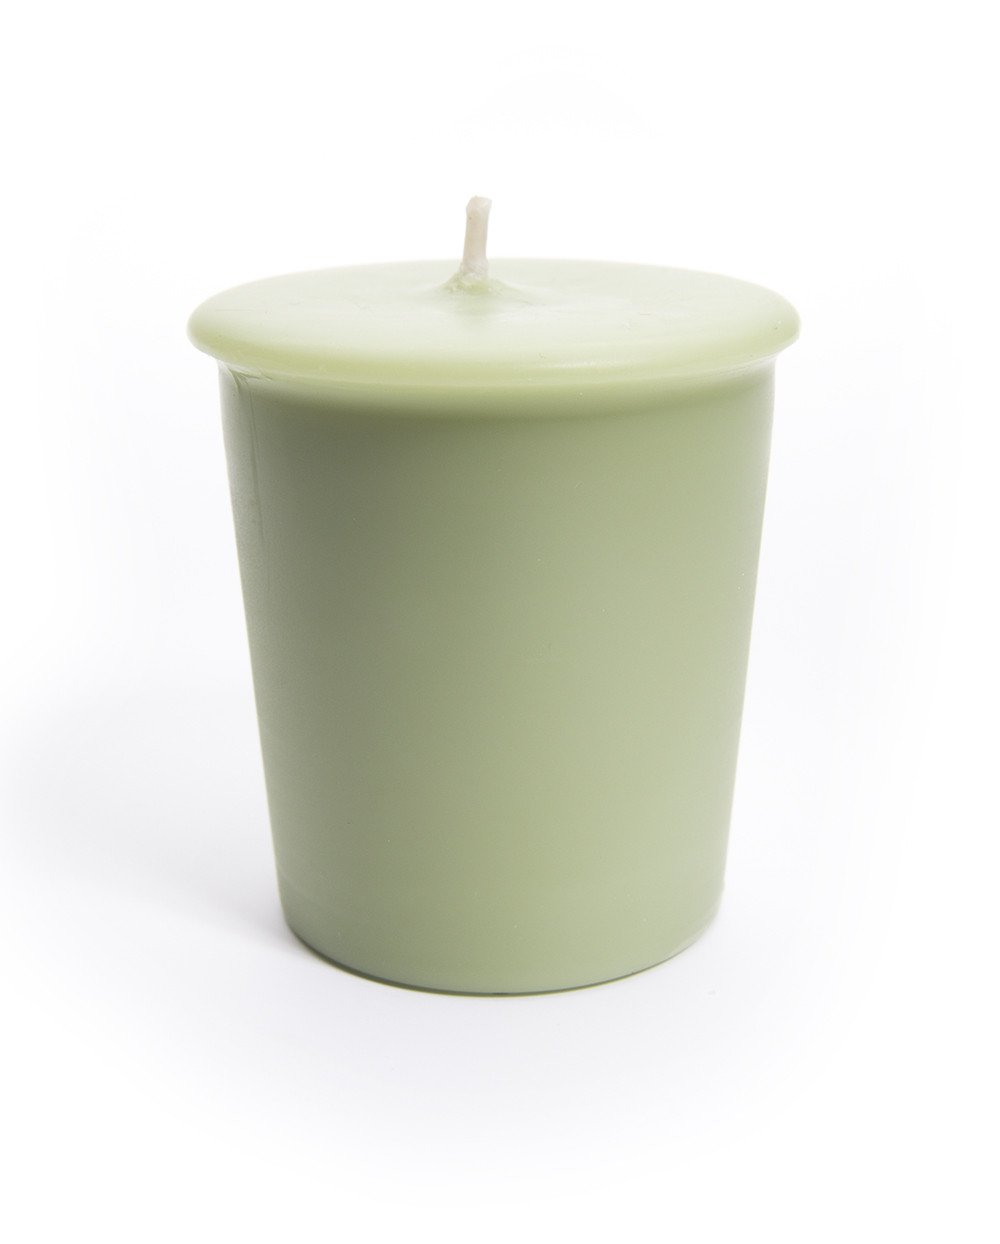 Clean Votive Candle Collection Cucumber Melon Votive Candles Green Soy Votives 6-Pack Highly Scented